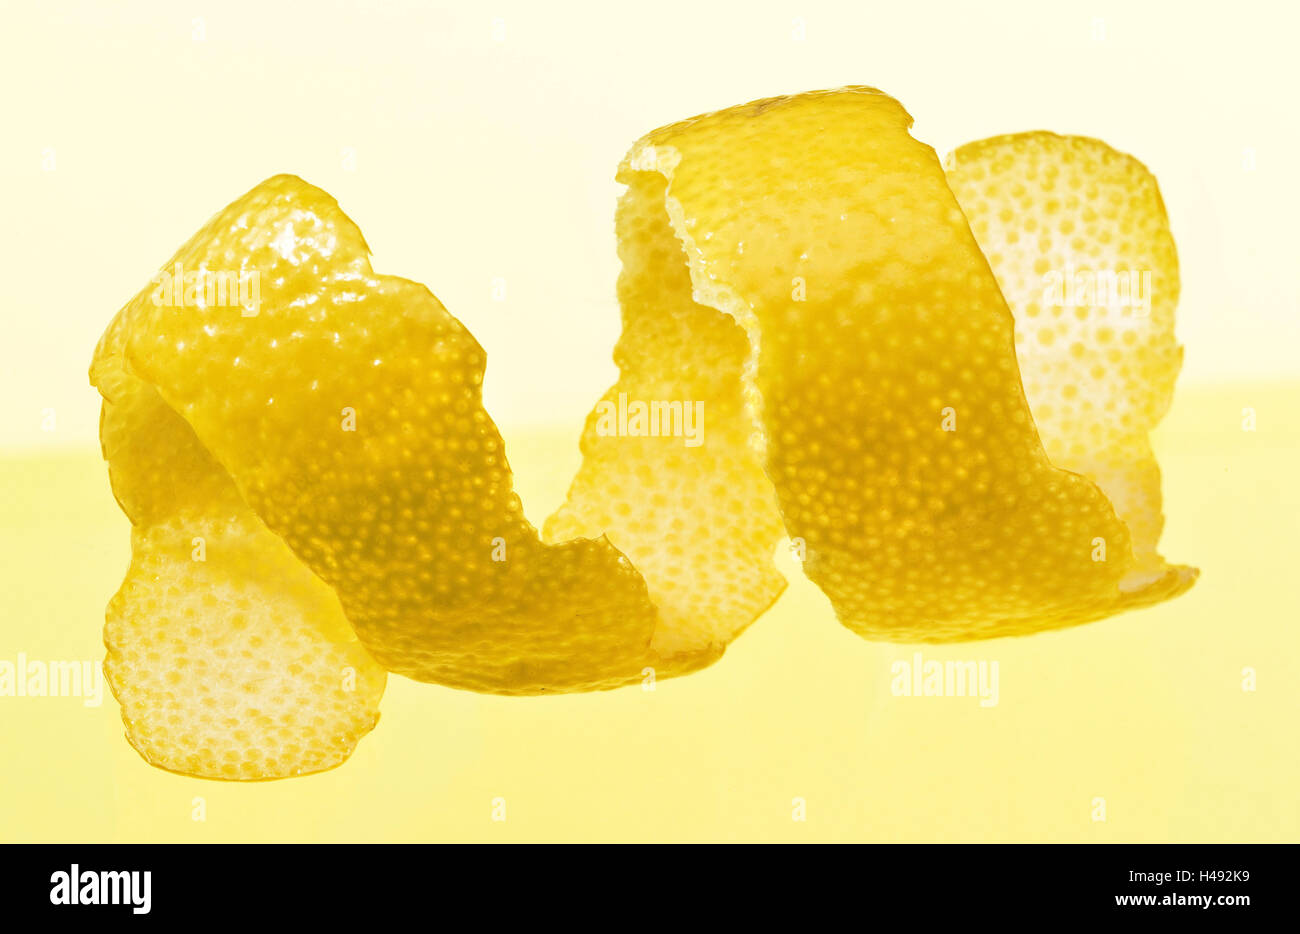 Lemon zest, fruits, peeled, studio, Stilllife, Food, - Stock Image